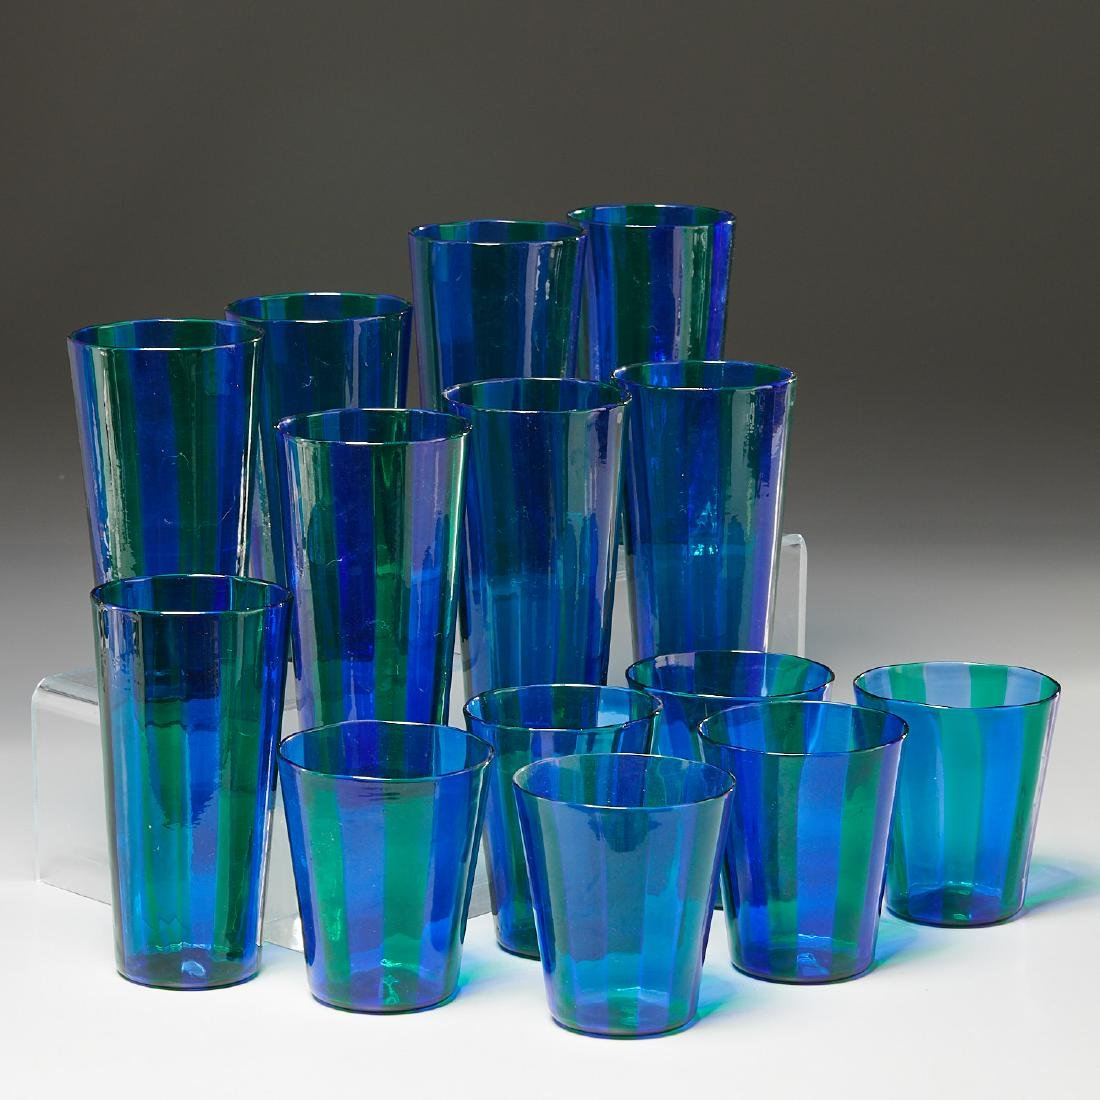 (14) Fulvio Bianconi for Venini drinking glasses